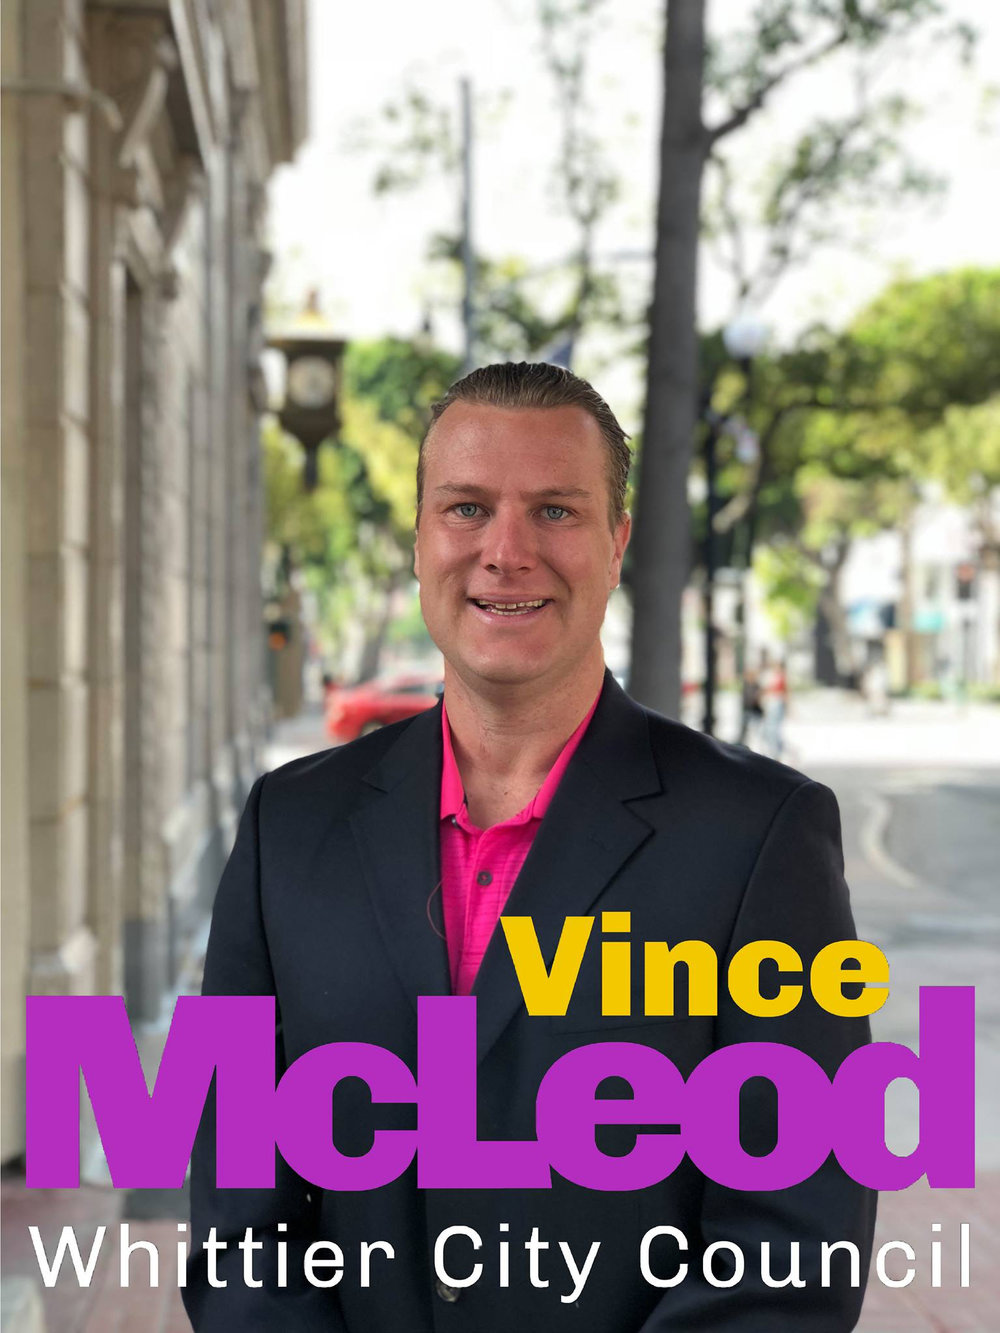 City Council candidate Vincent McLeod